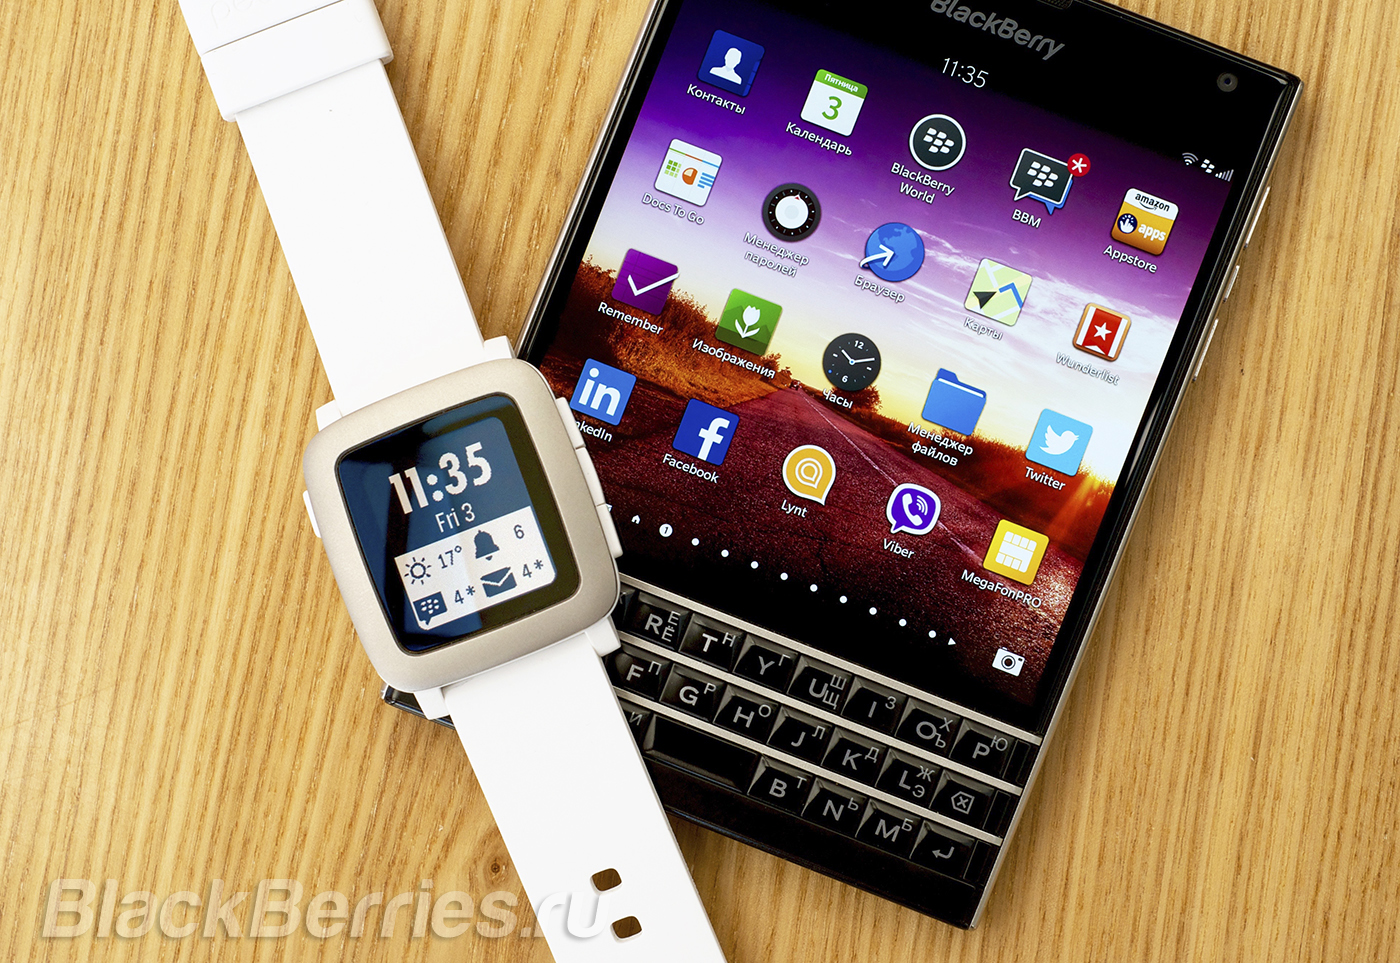 BlackBerry-Passport-Pebble-Time-55